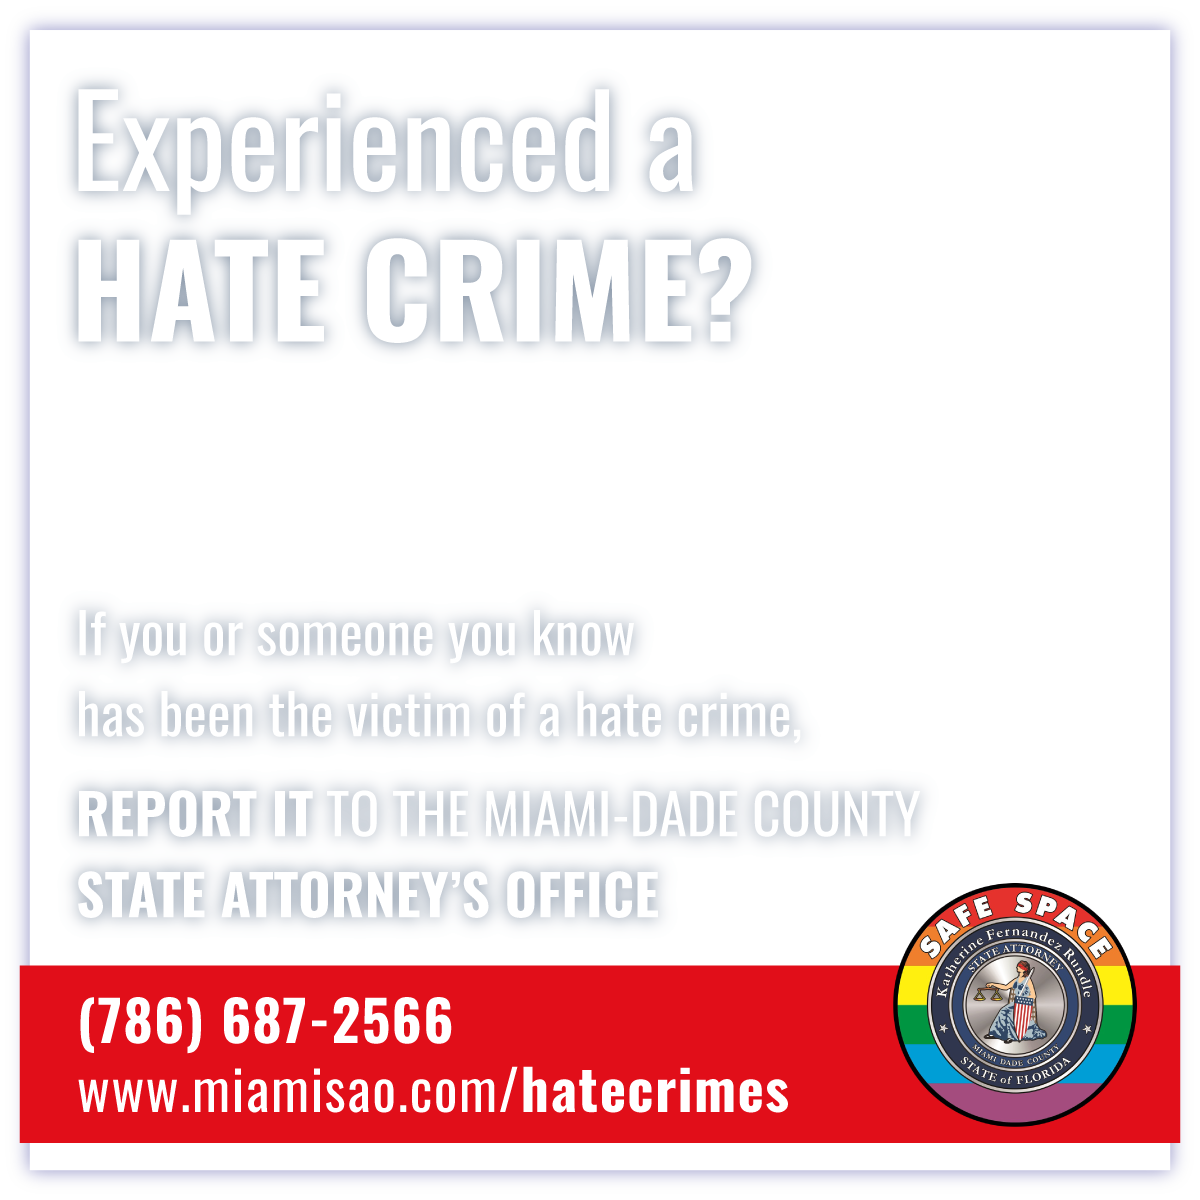 Report Hate Crime to the State Attorney Office